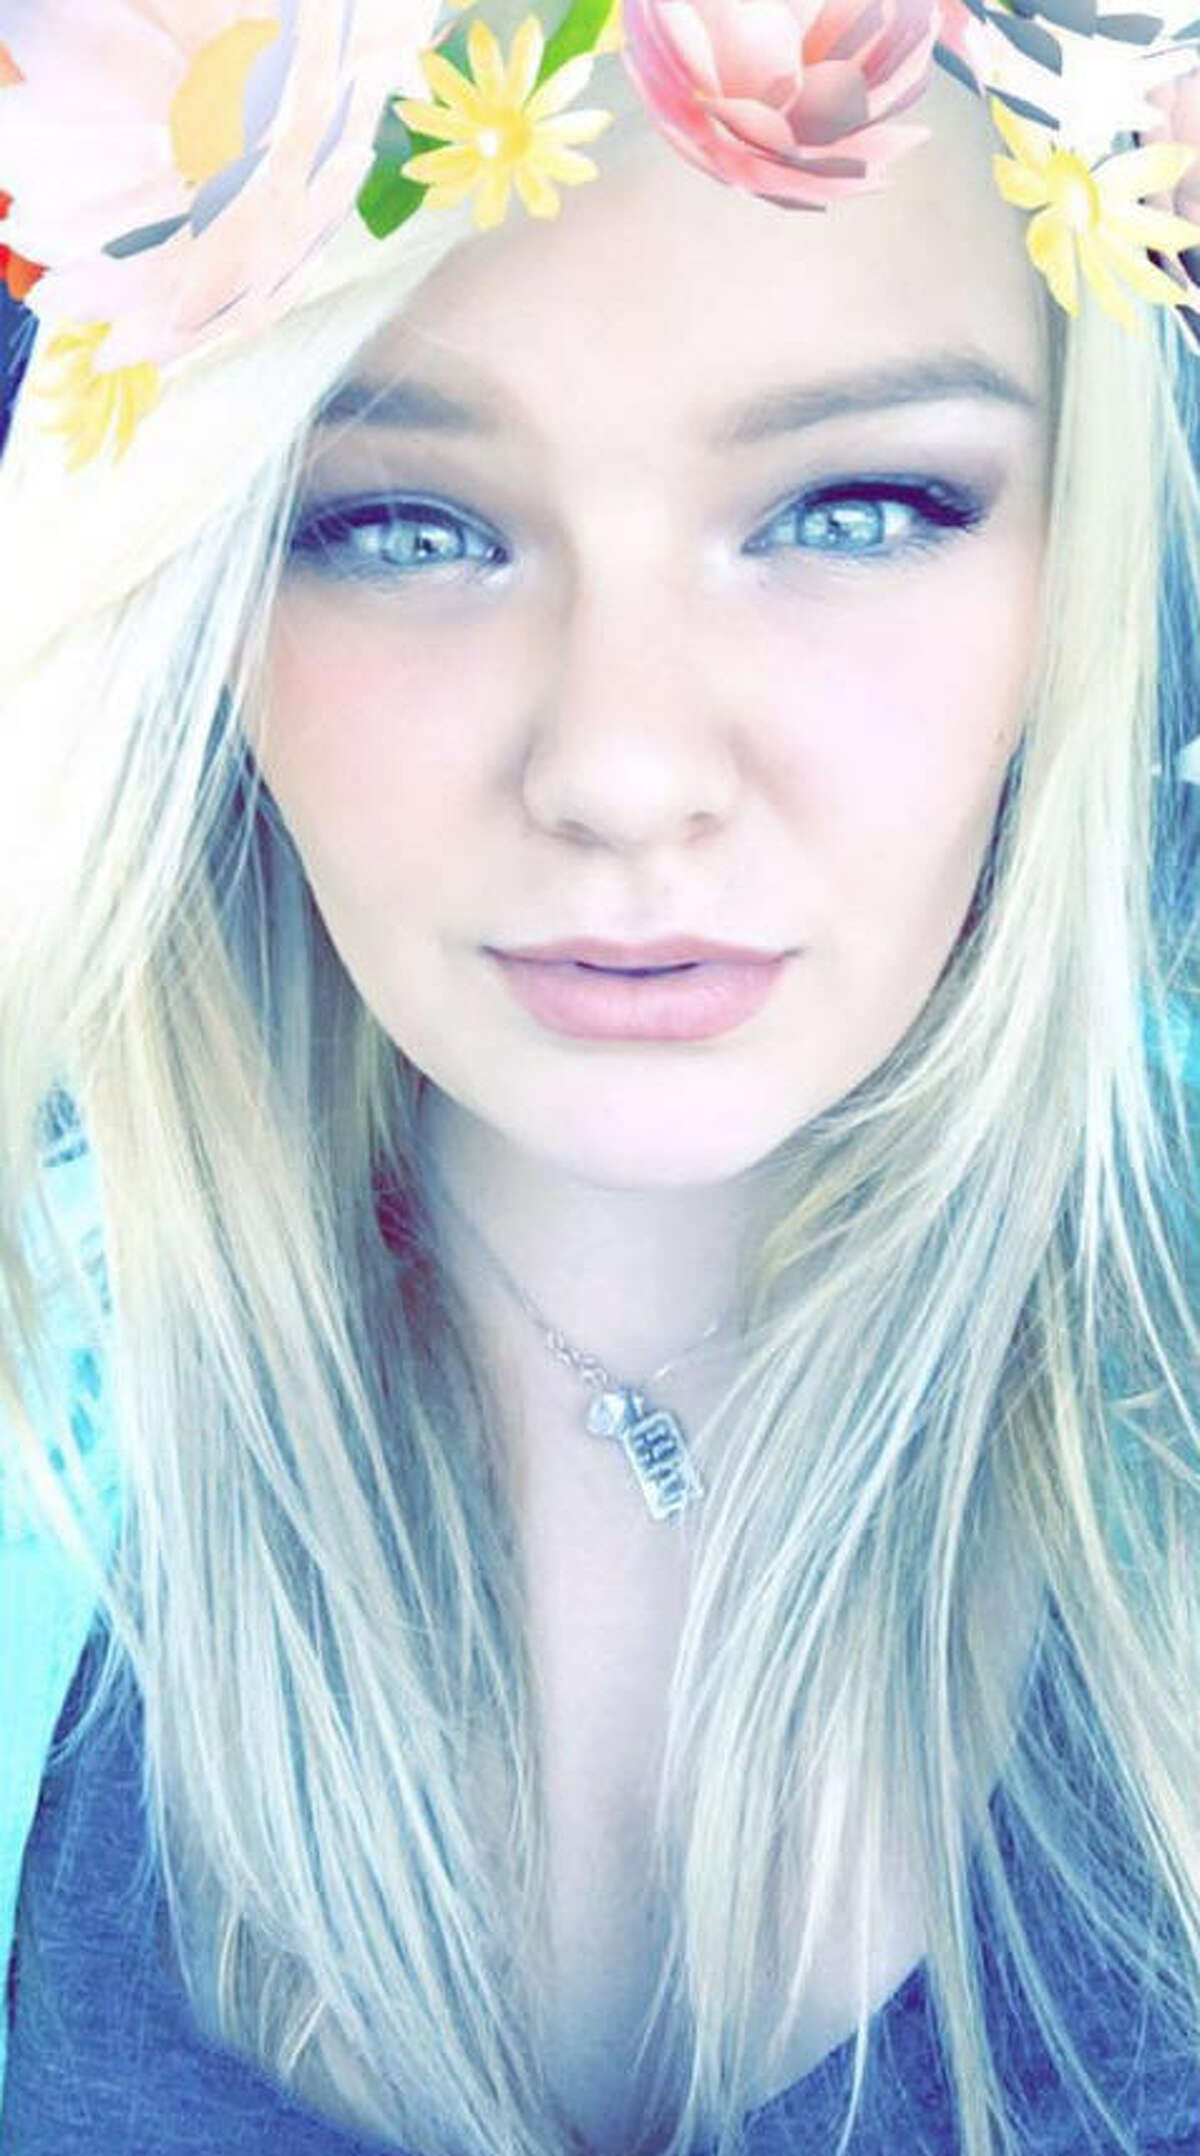 Taylor Sheats, 22, was shot to death by her mother in Katy, Texas on Friday, June 25, 2016. (Source: Facebook)